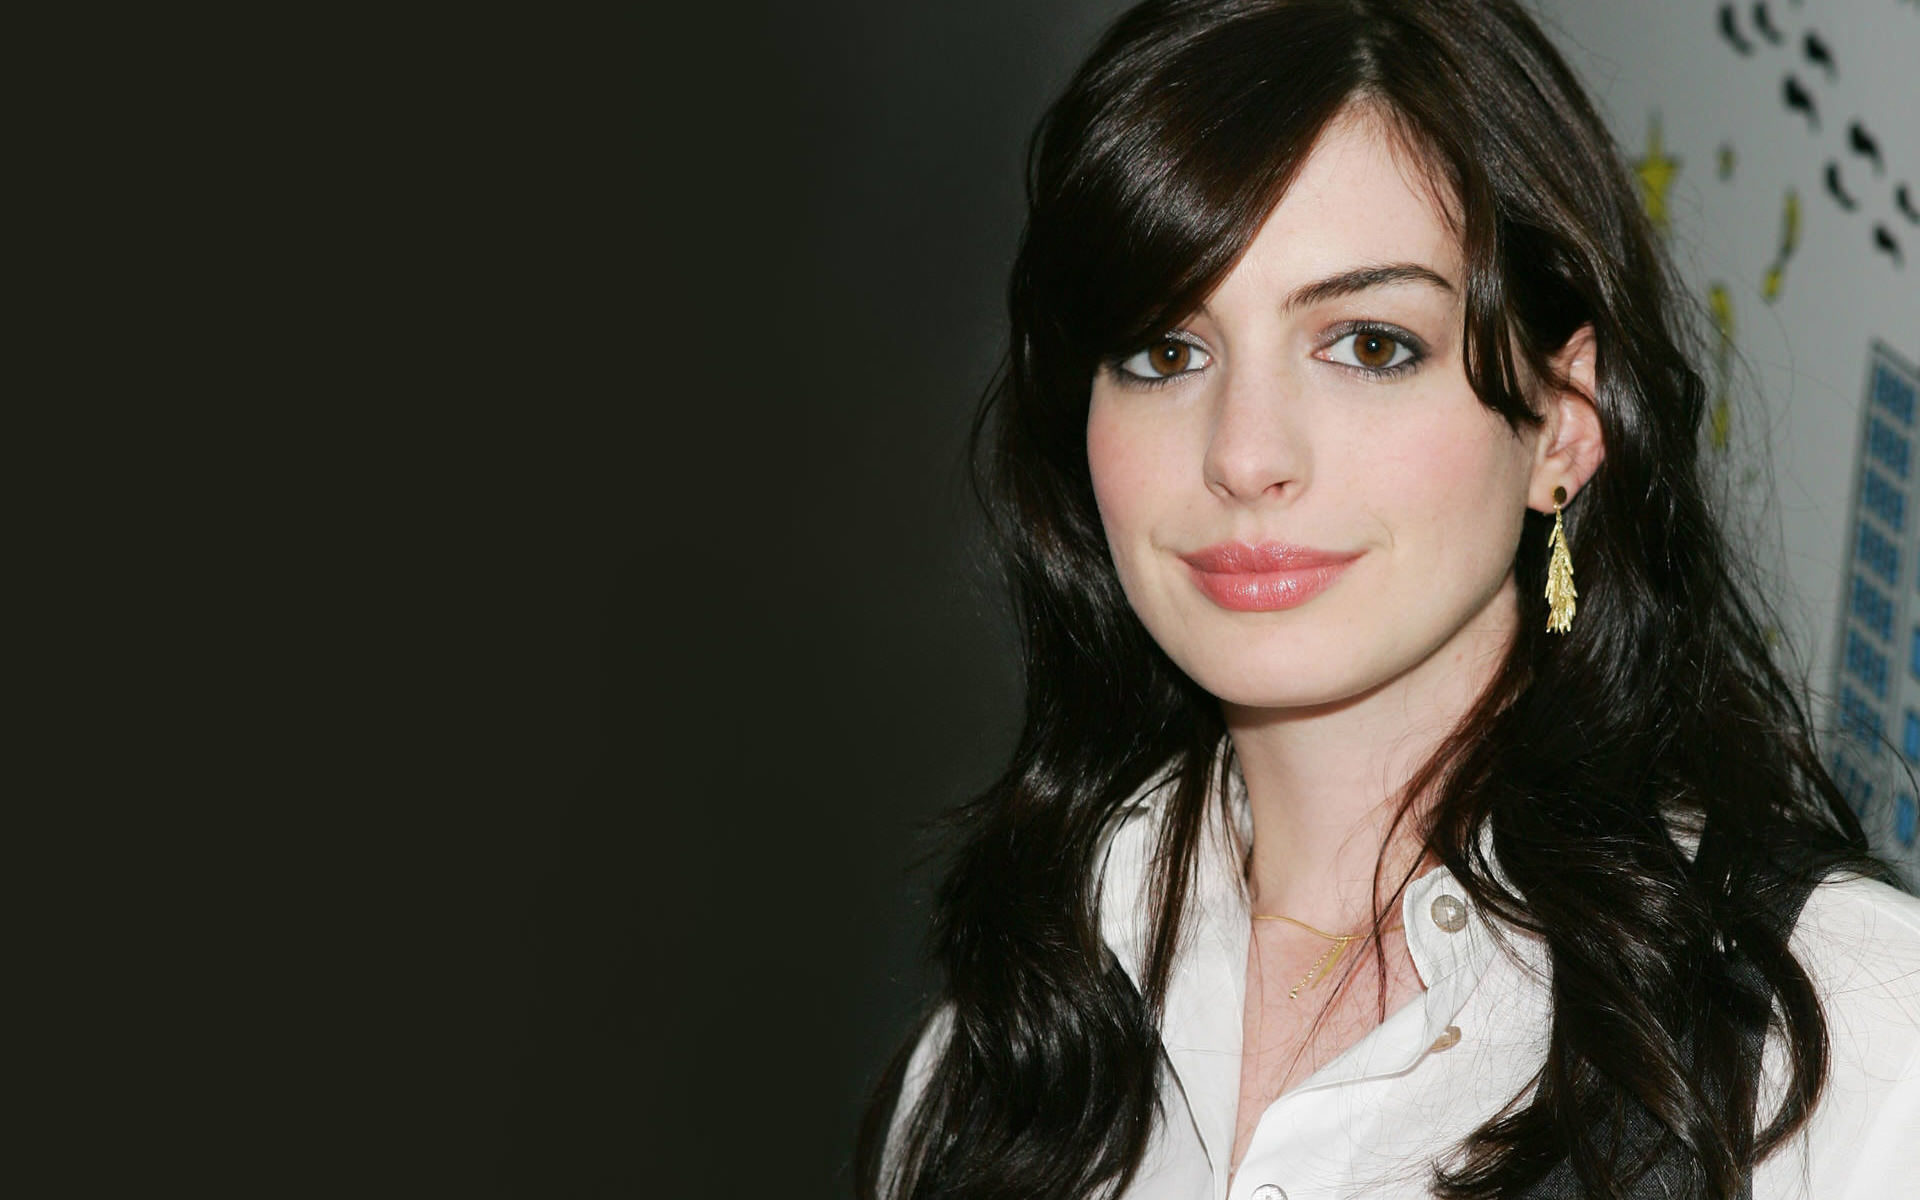 Wallpaperstopcom/wallpapers/celebrity Wallpaperspers/anne Hathaway